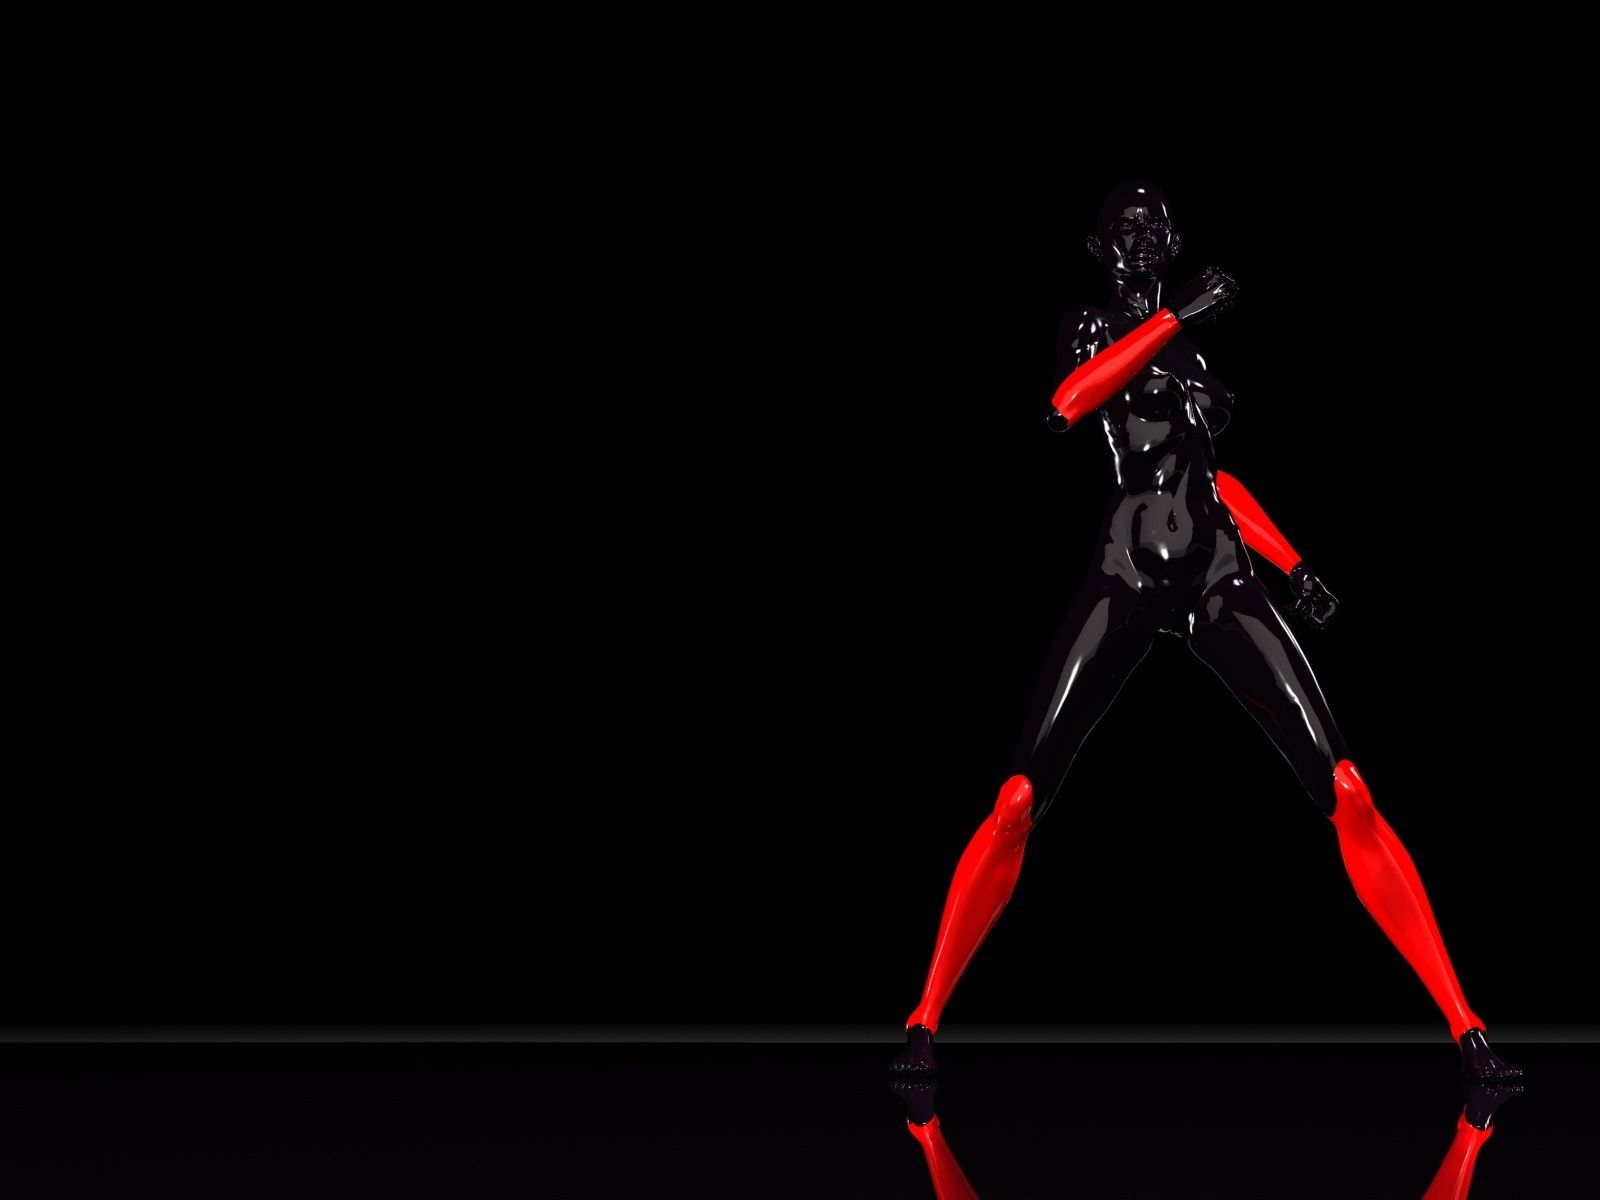 Black And Red >> Puma Black And Red Girl Wallpaper Black And Red Red Black